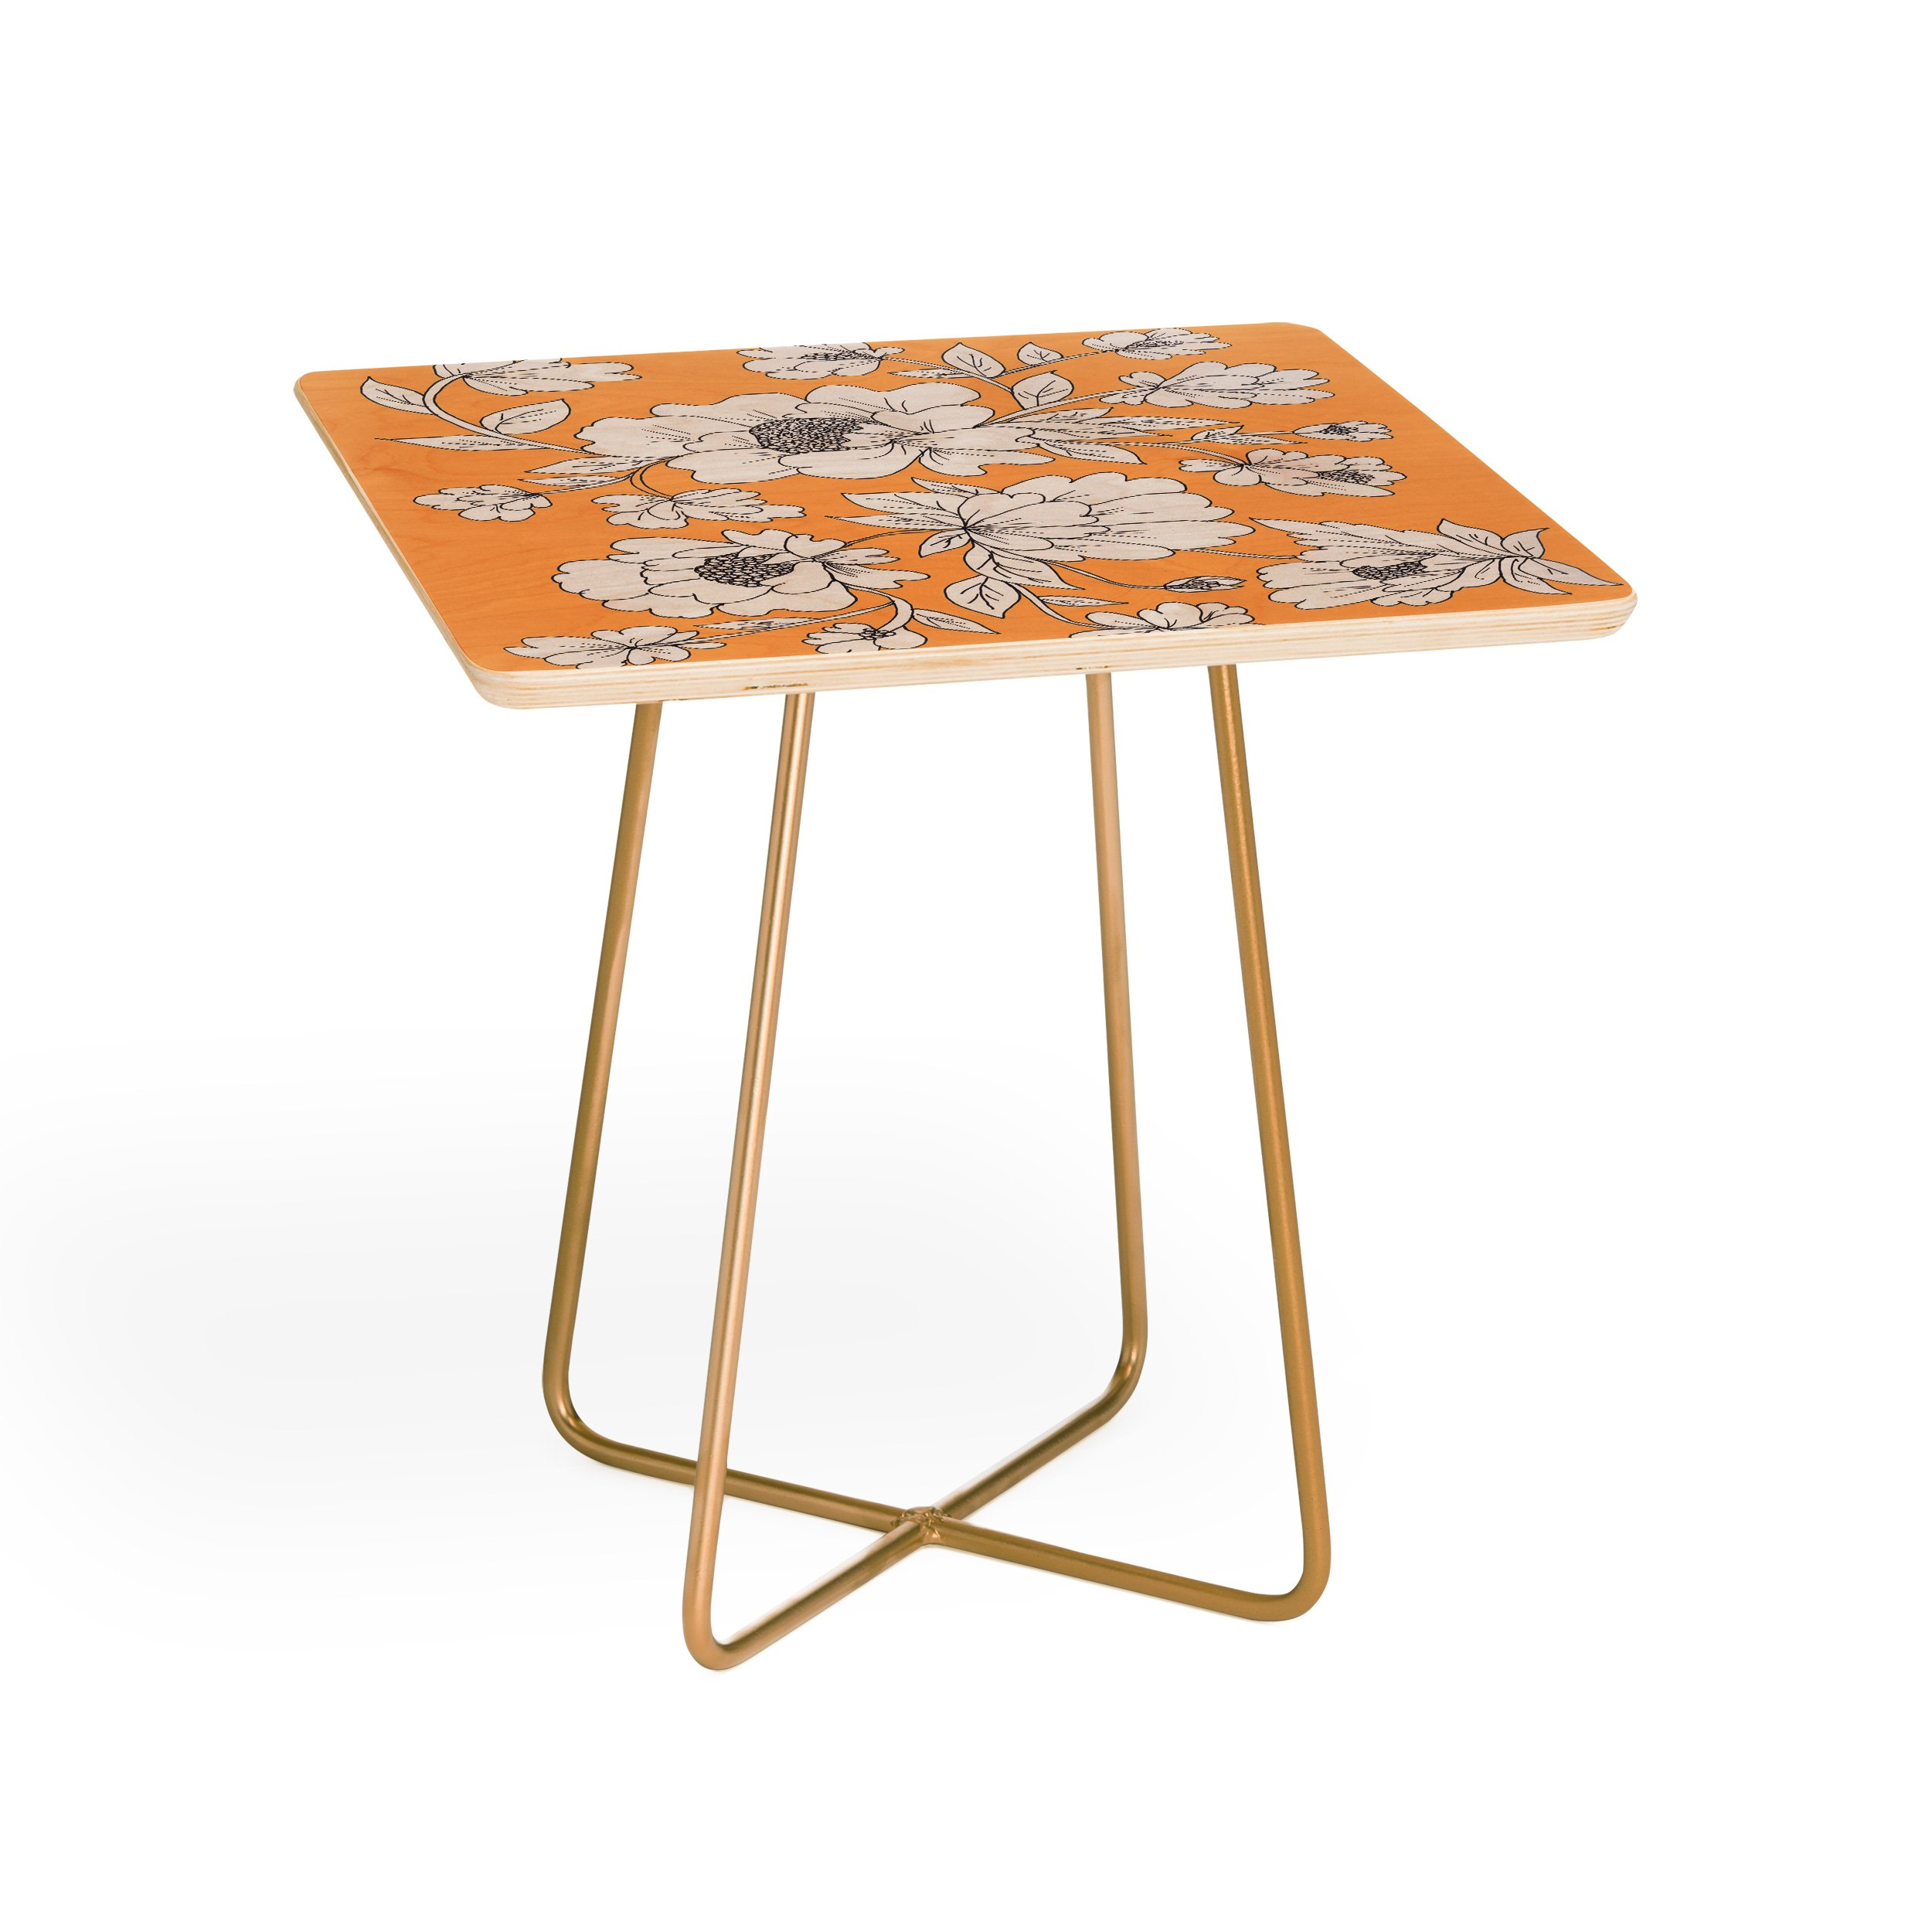 floral orange side table rosie brown square white background aston gold outdoor lamp design round glass nest tables crib furniture sets black kitchen set home goods corner bench